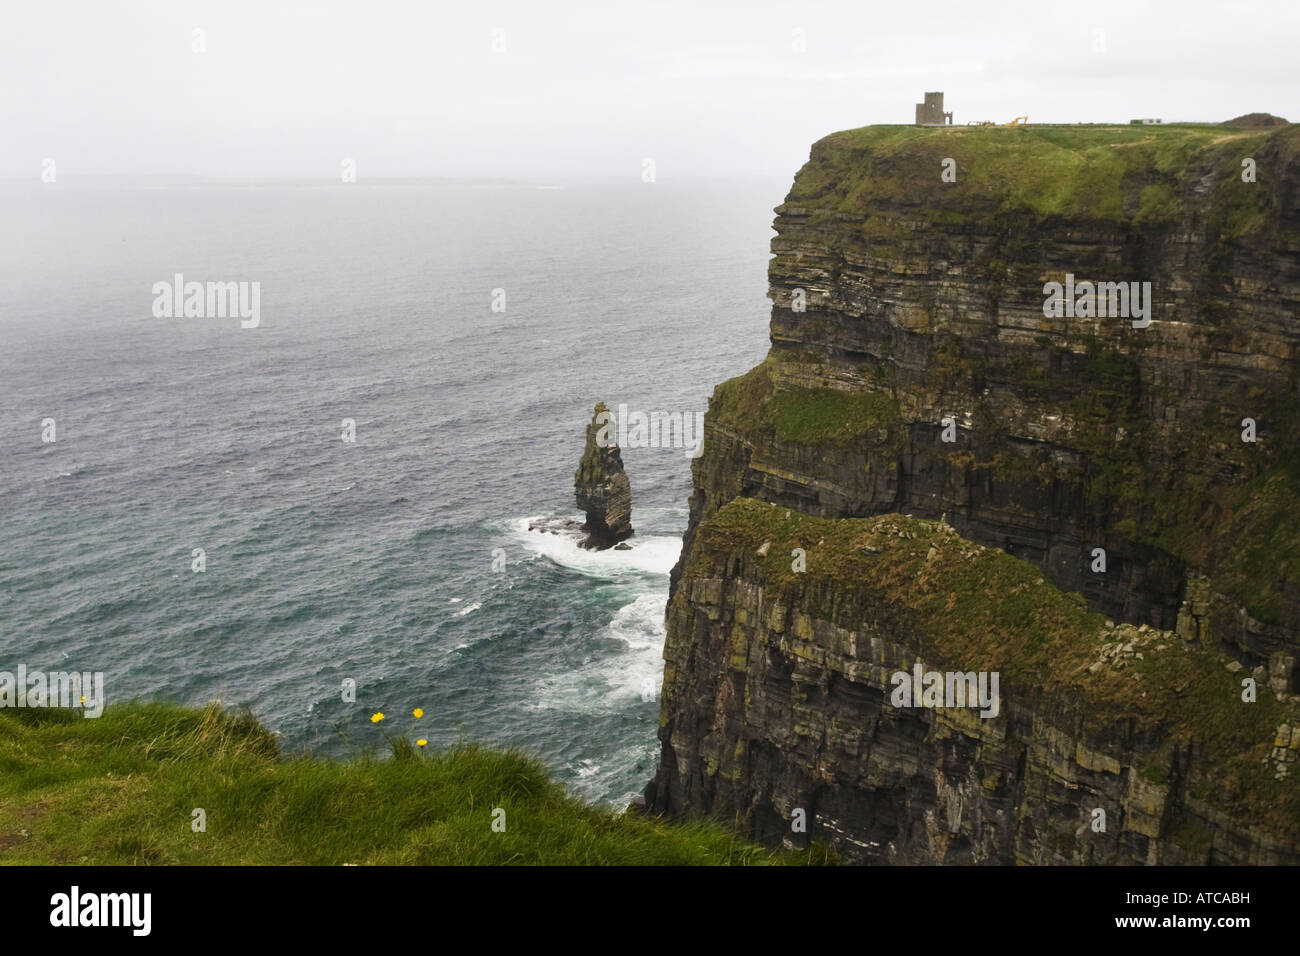 Cliffs of Moher, west coast of Ireland, Ireland, Clarens - Stock Image